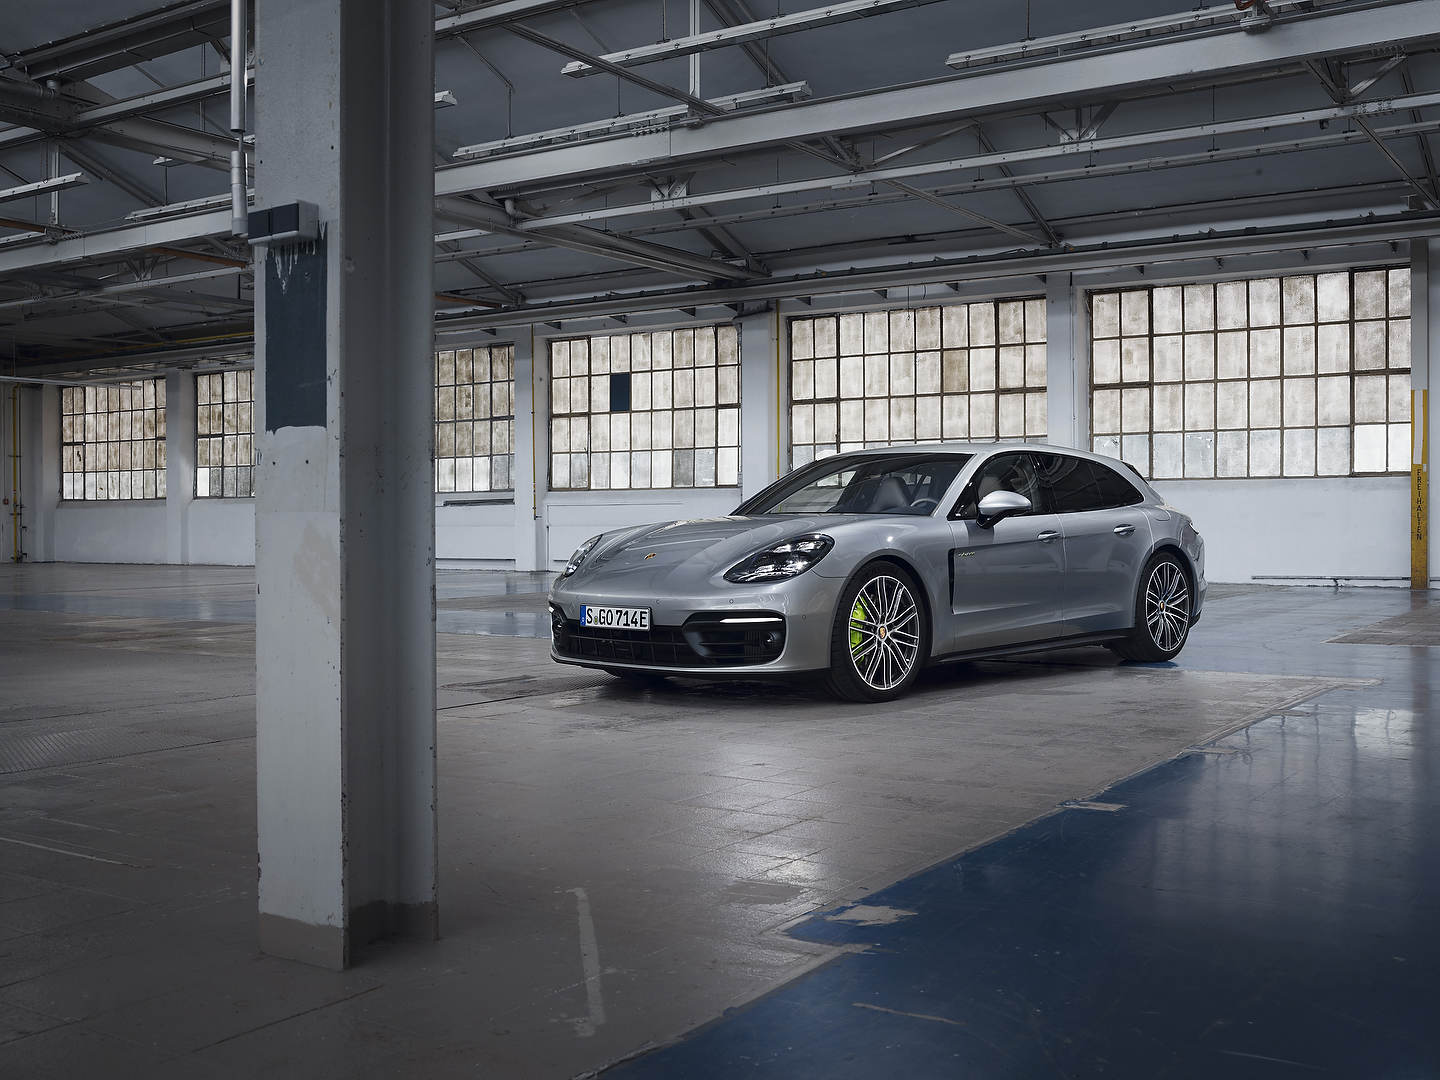 The new 2021 Porsche Panamera E-Hybrid models